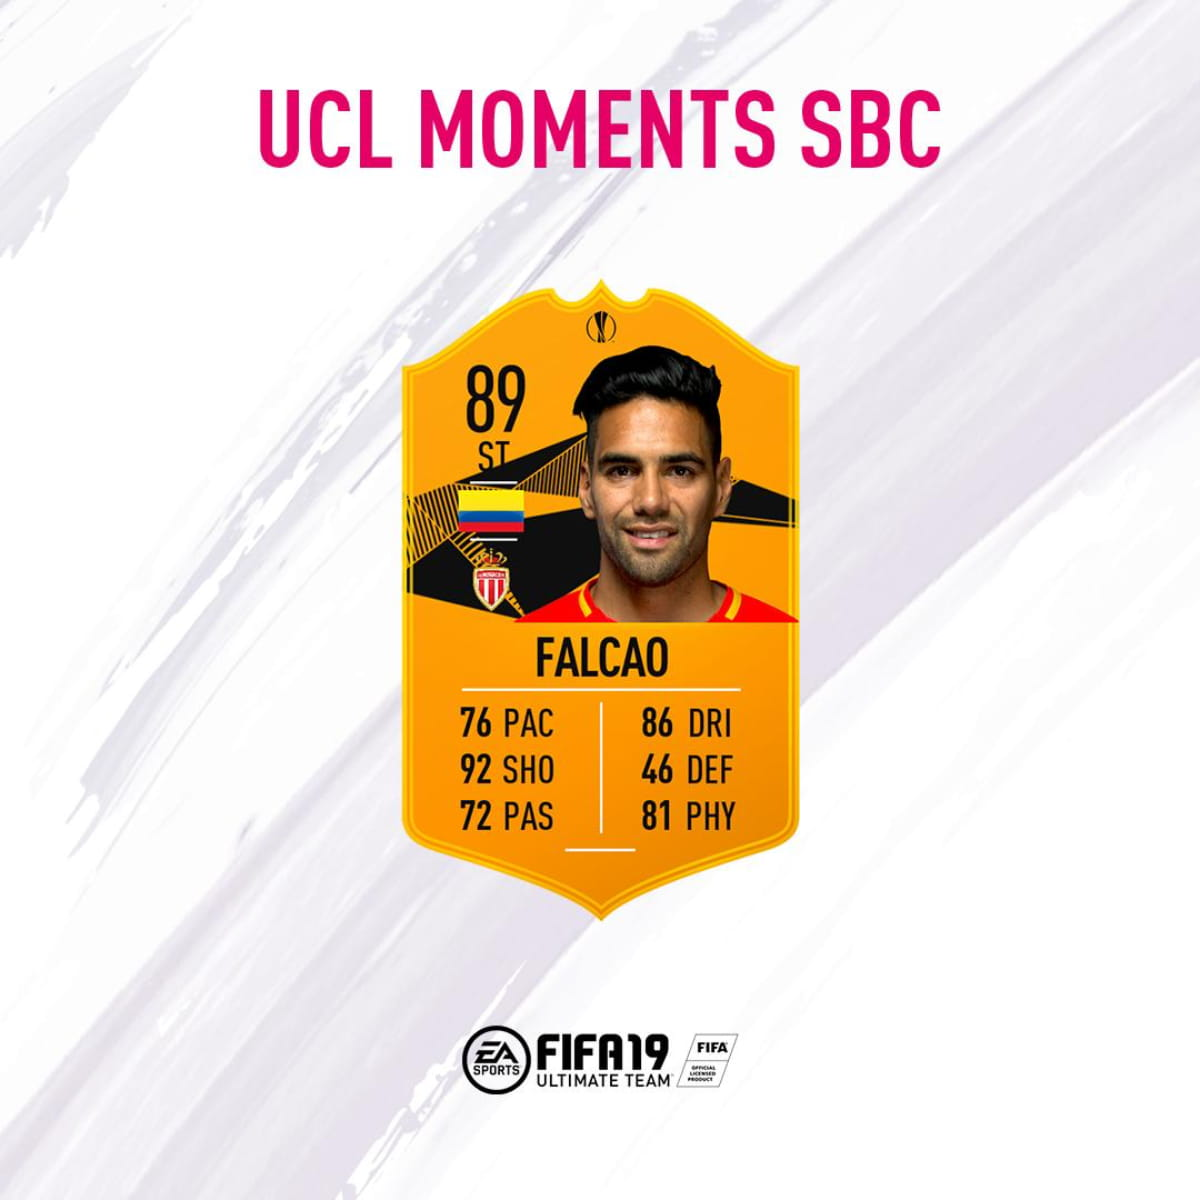 Como completar o Falcao 'UEL Moments' no Fifa 19 Ultimate Team